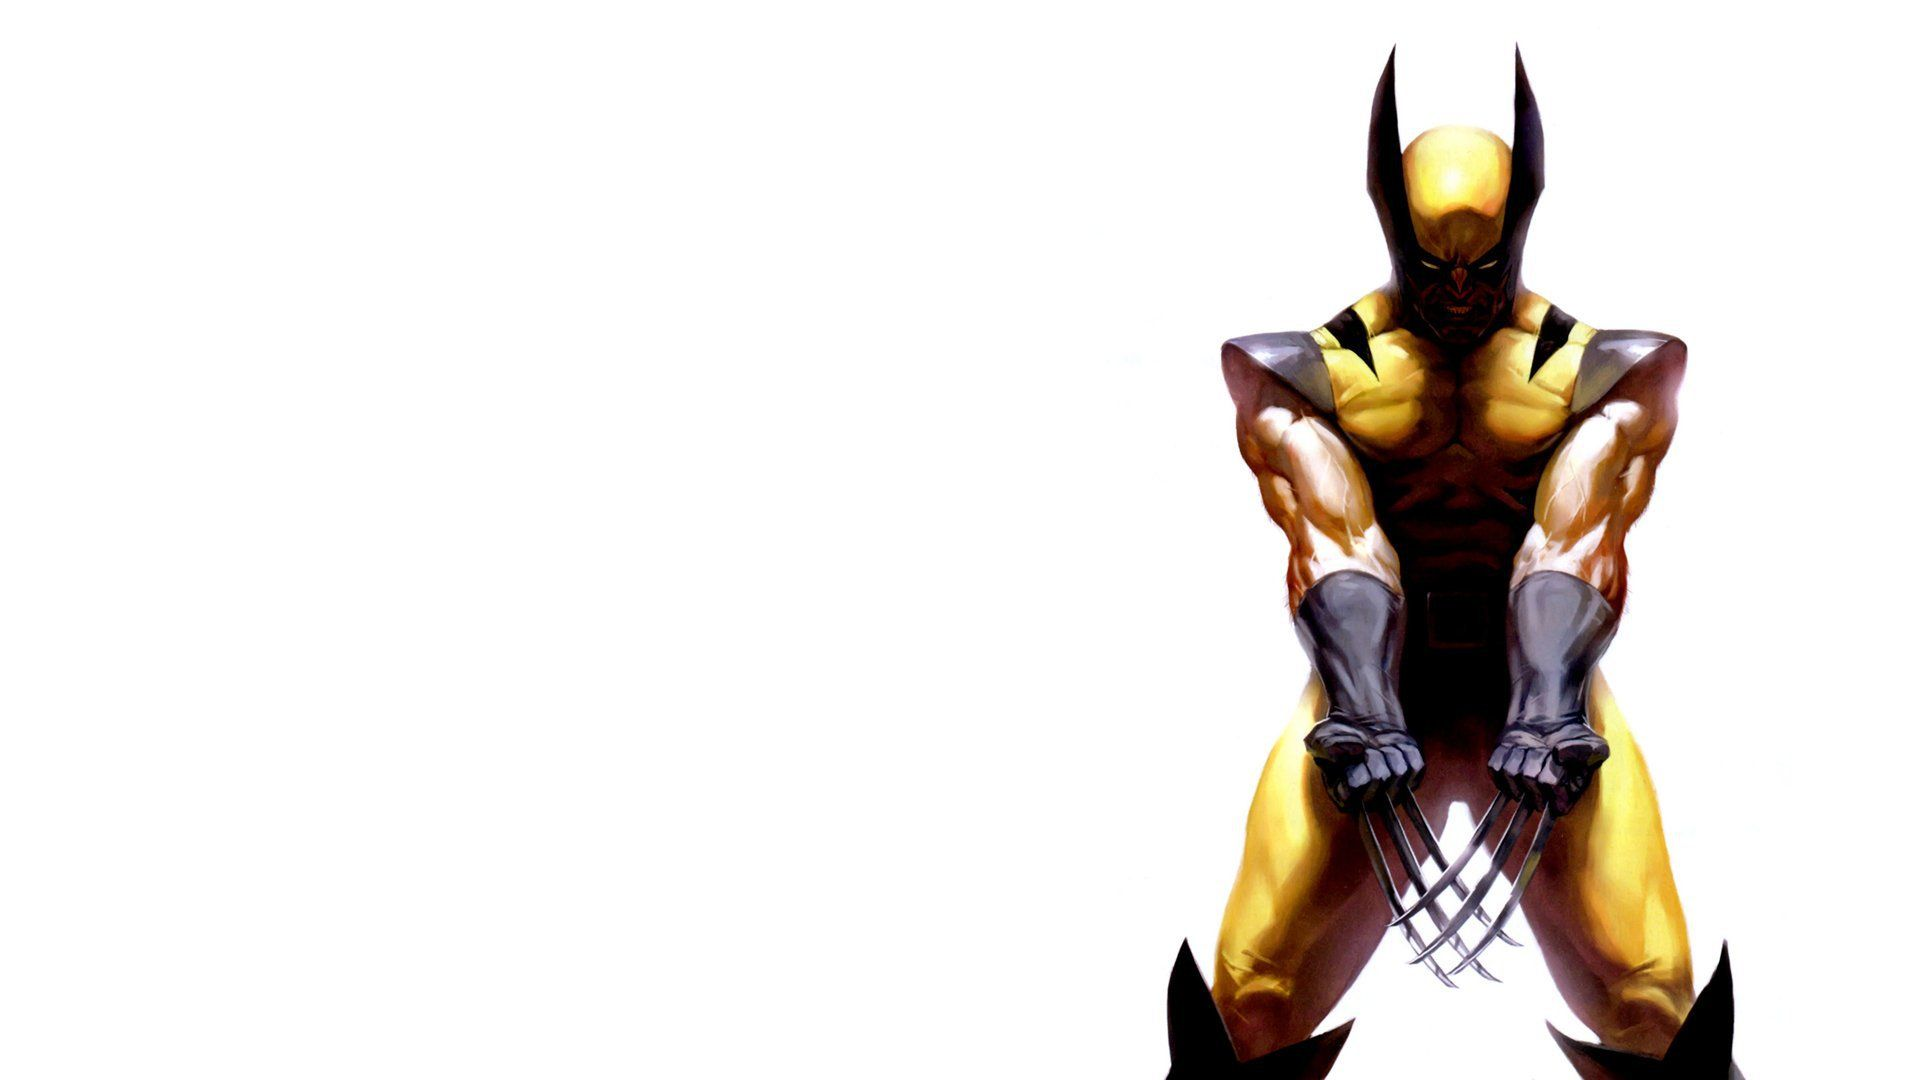 Cool Marvel Wallpapers Hd Epic Heroes Select Image Gallery X